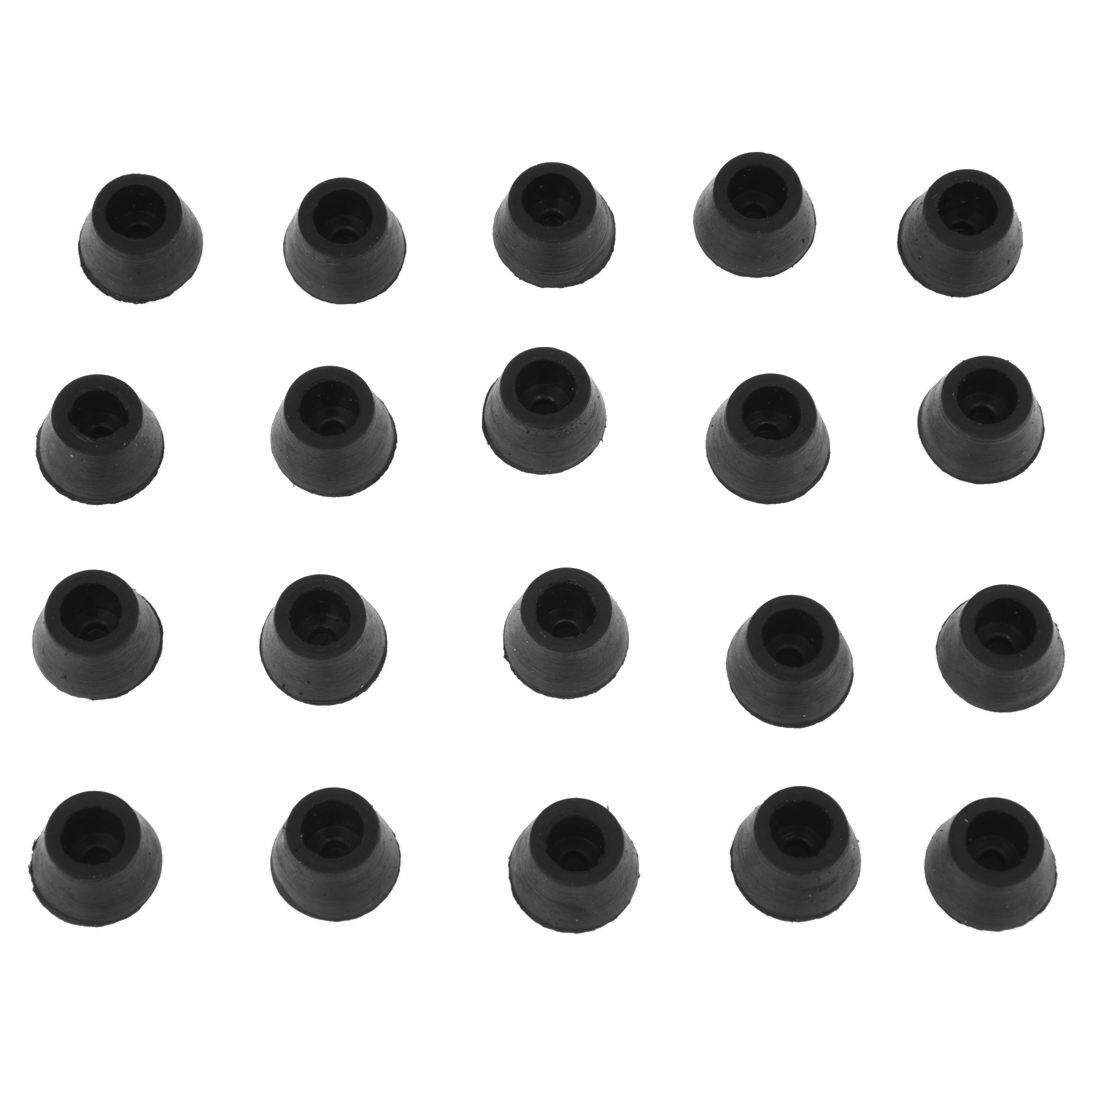 Chair Foot Caps 20pcs Black Chair Couch Table Rubber Furniture Leg End Caps 16mm Dia Intl Intl